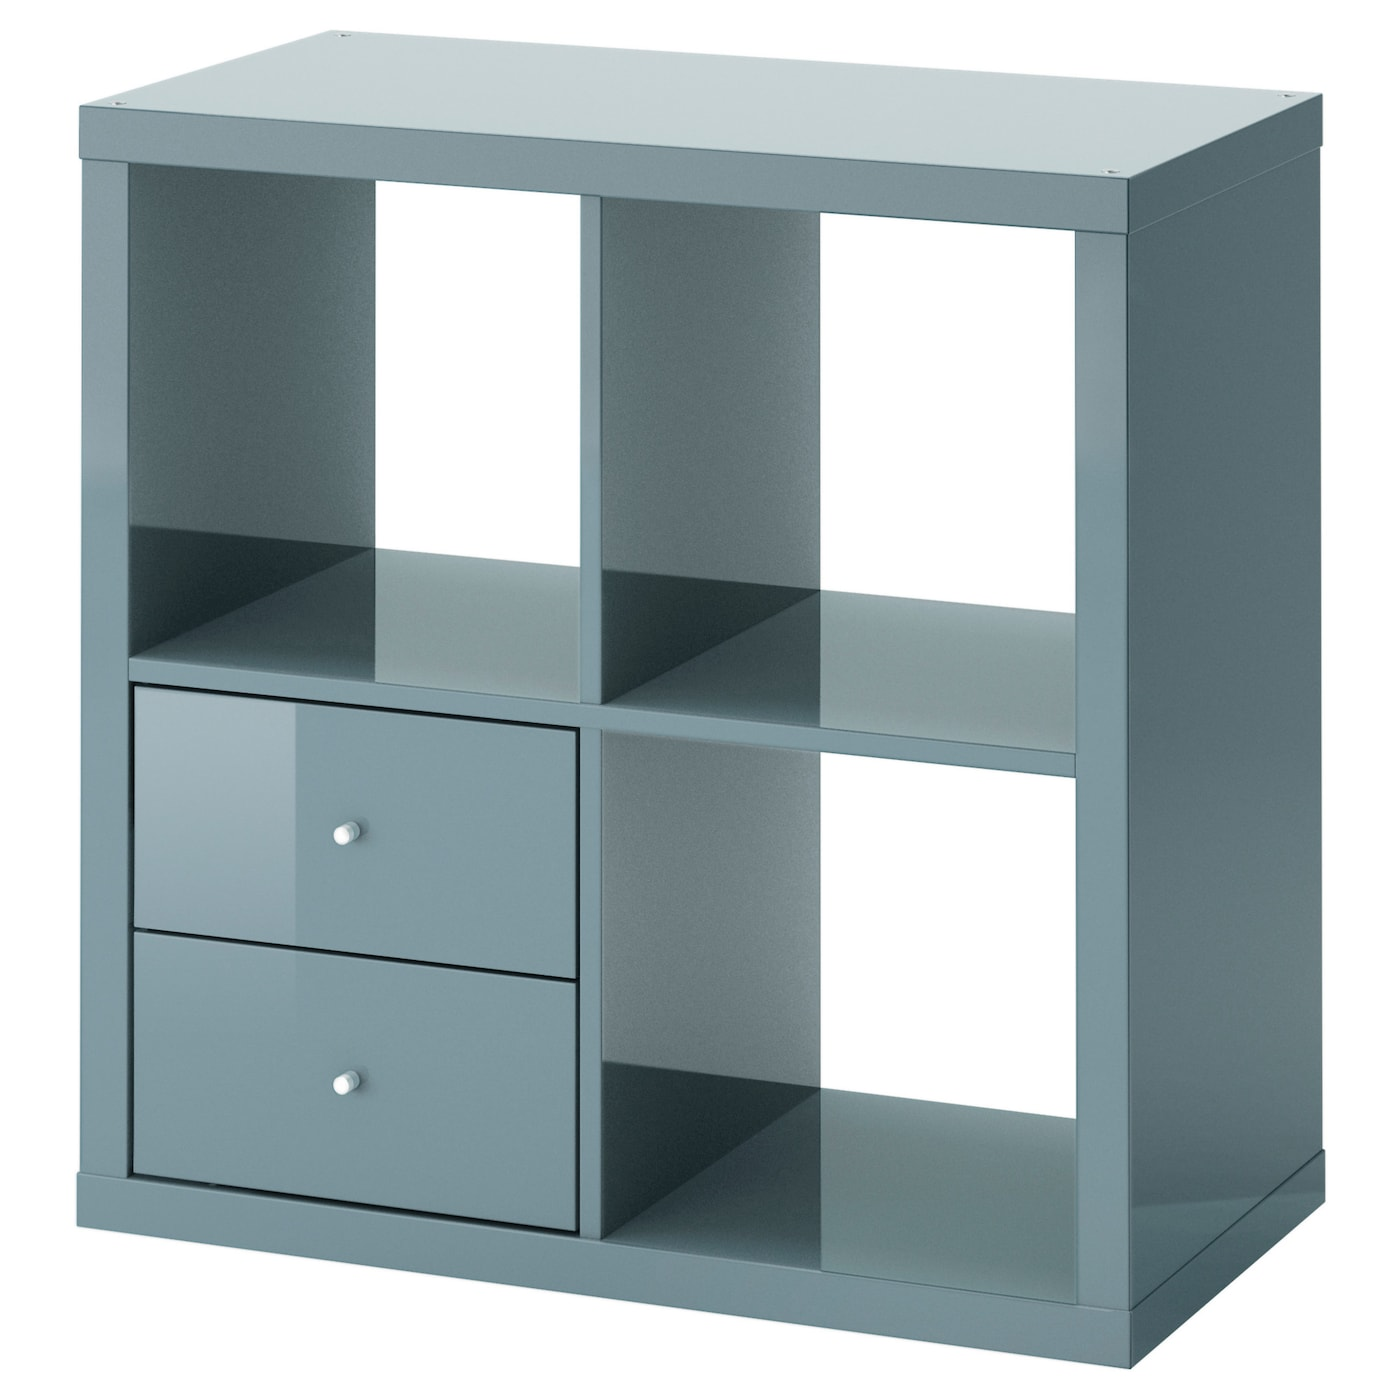 Kallax shelving unit with drawers high gloss grey for Bibliotheque 20 cm profondeur